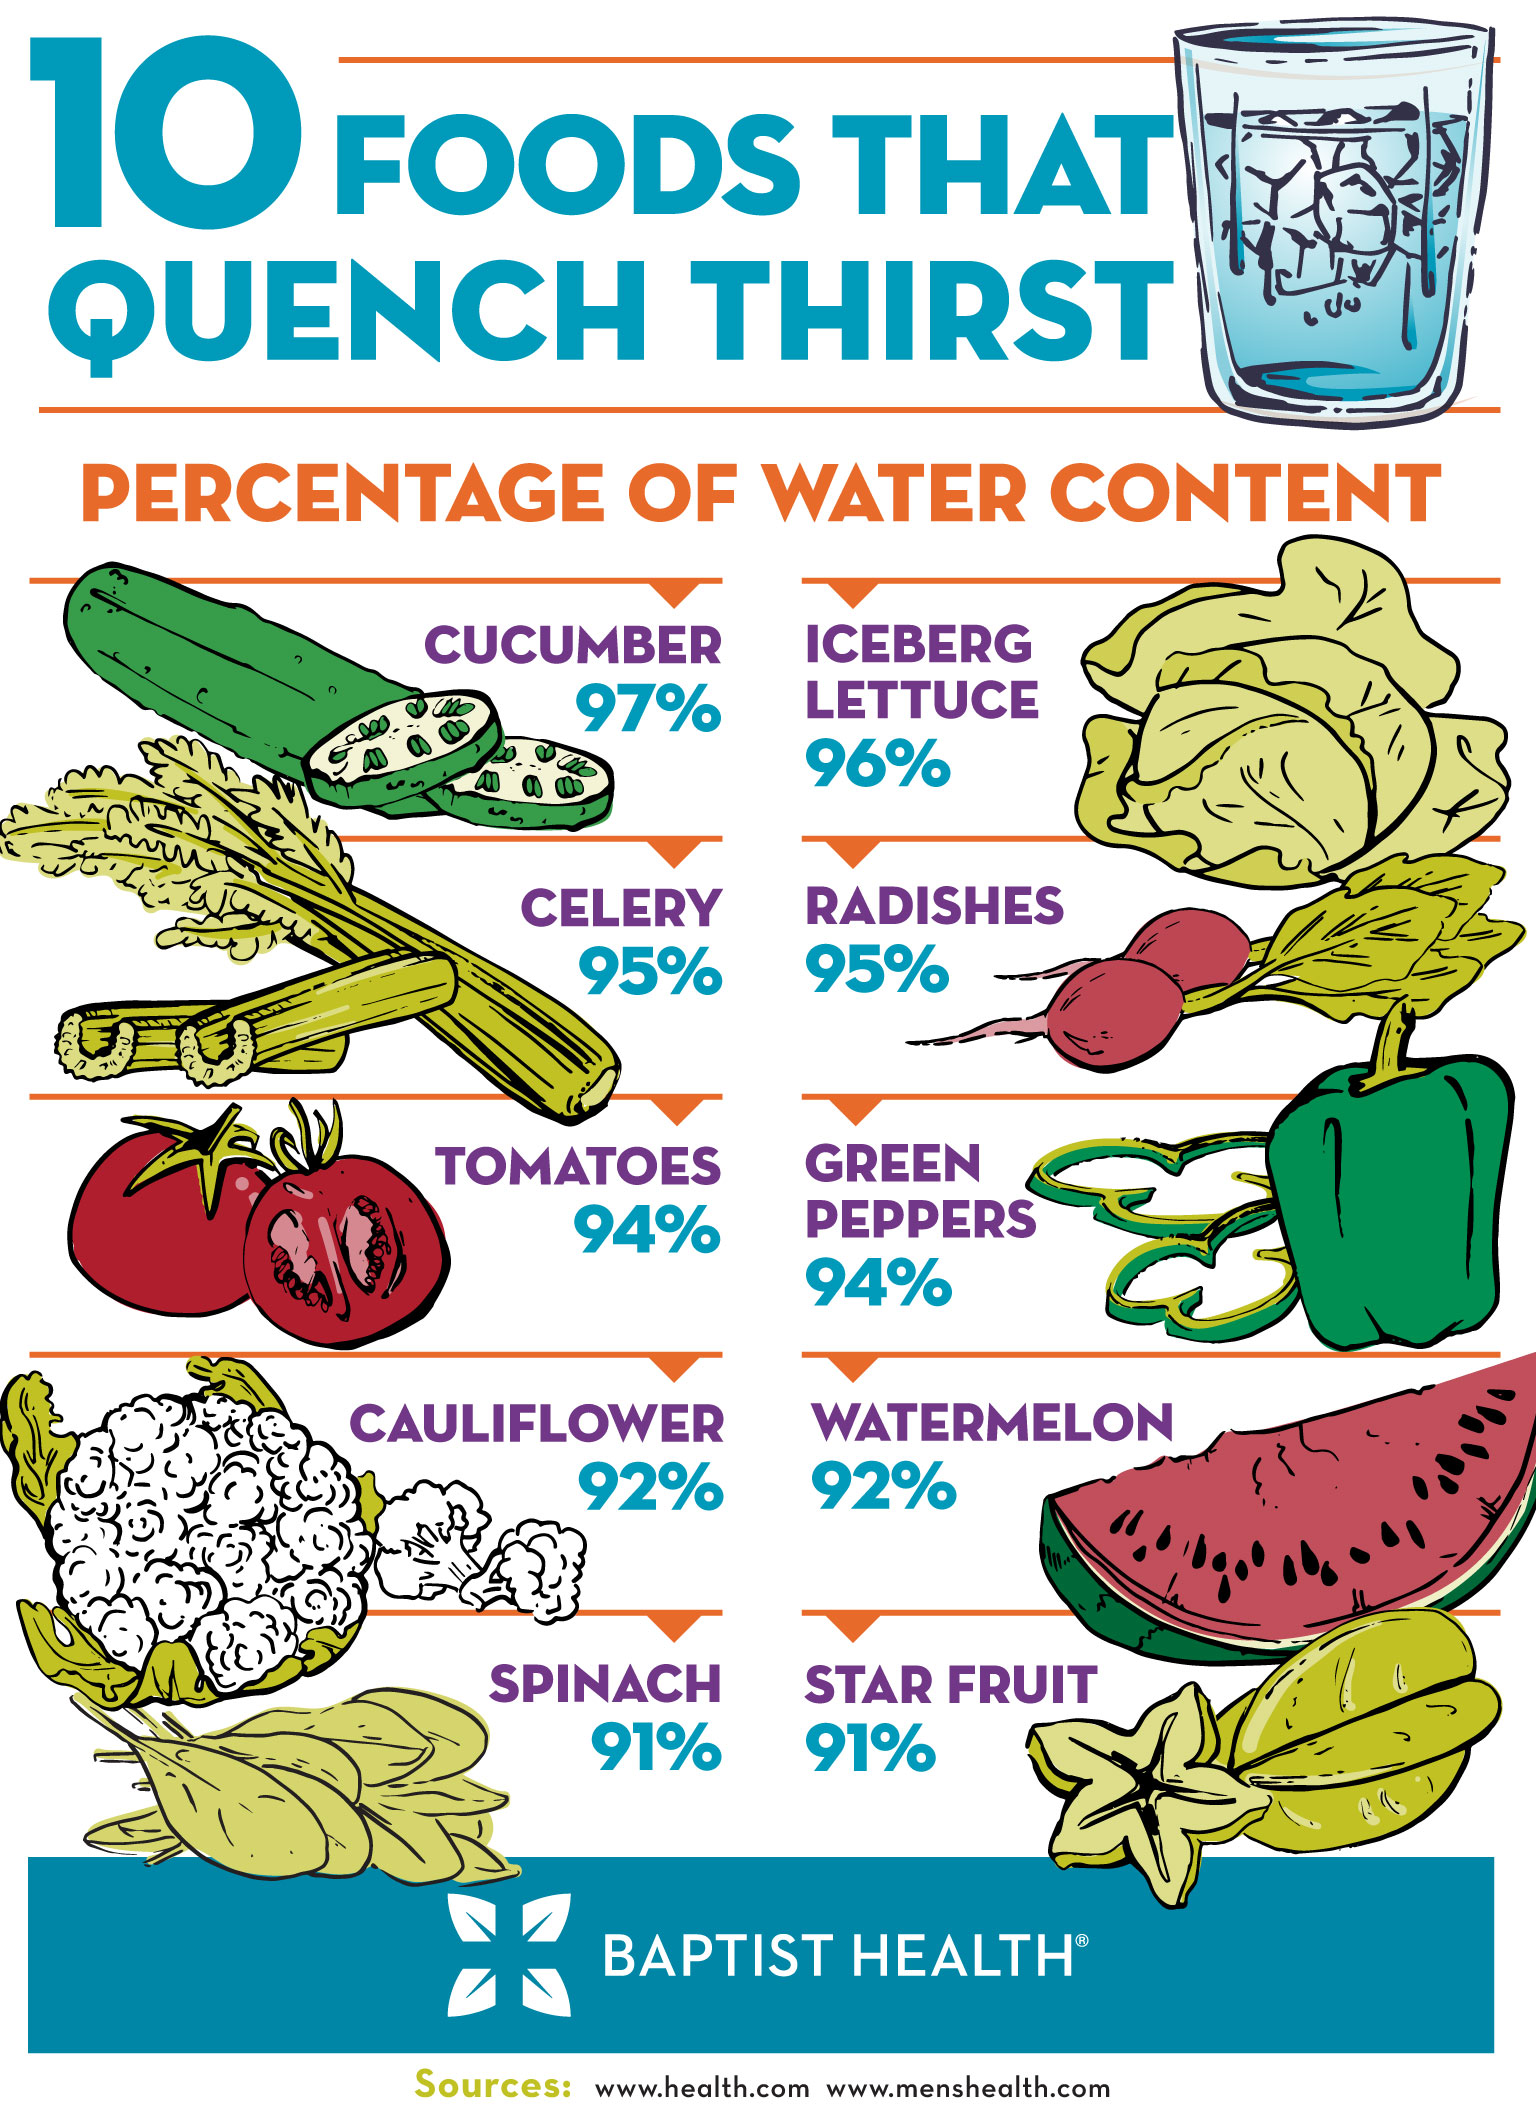 10-foods-to-quench-thirst-infographic